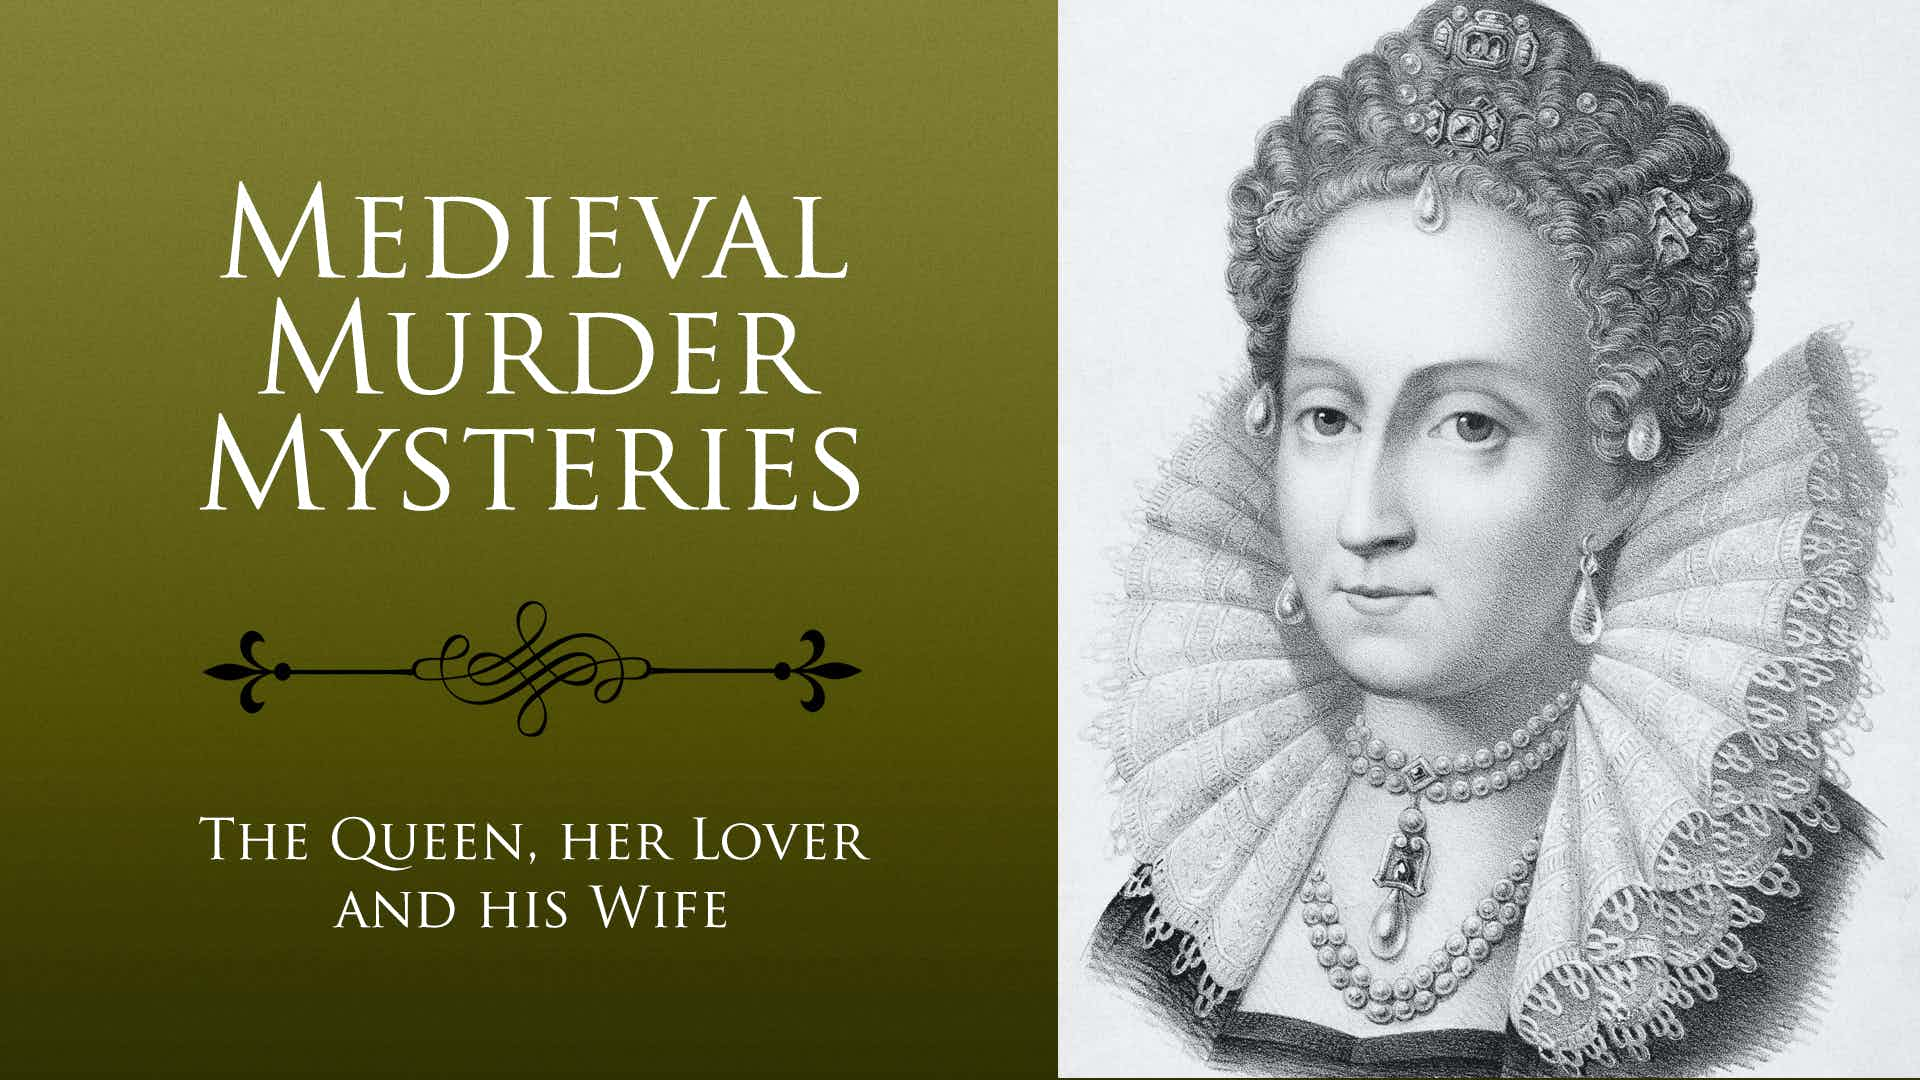 Medieval Murder Mysteries: The Queen, Her Lover and His Wife